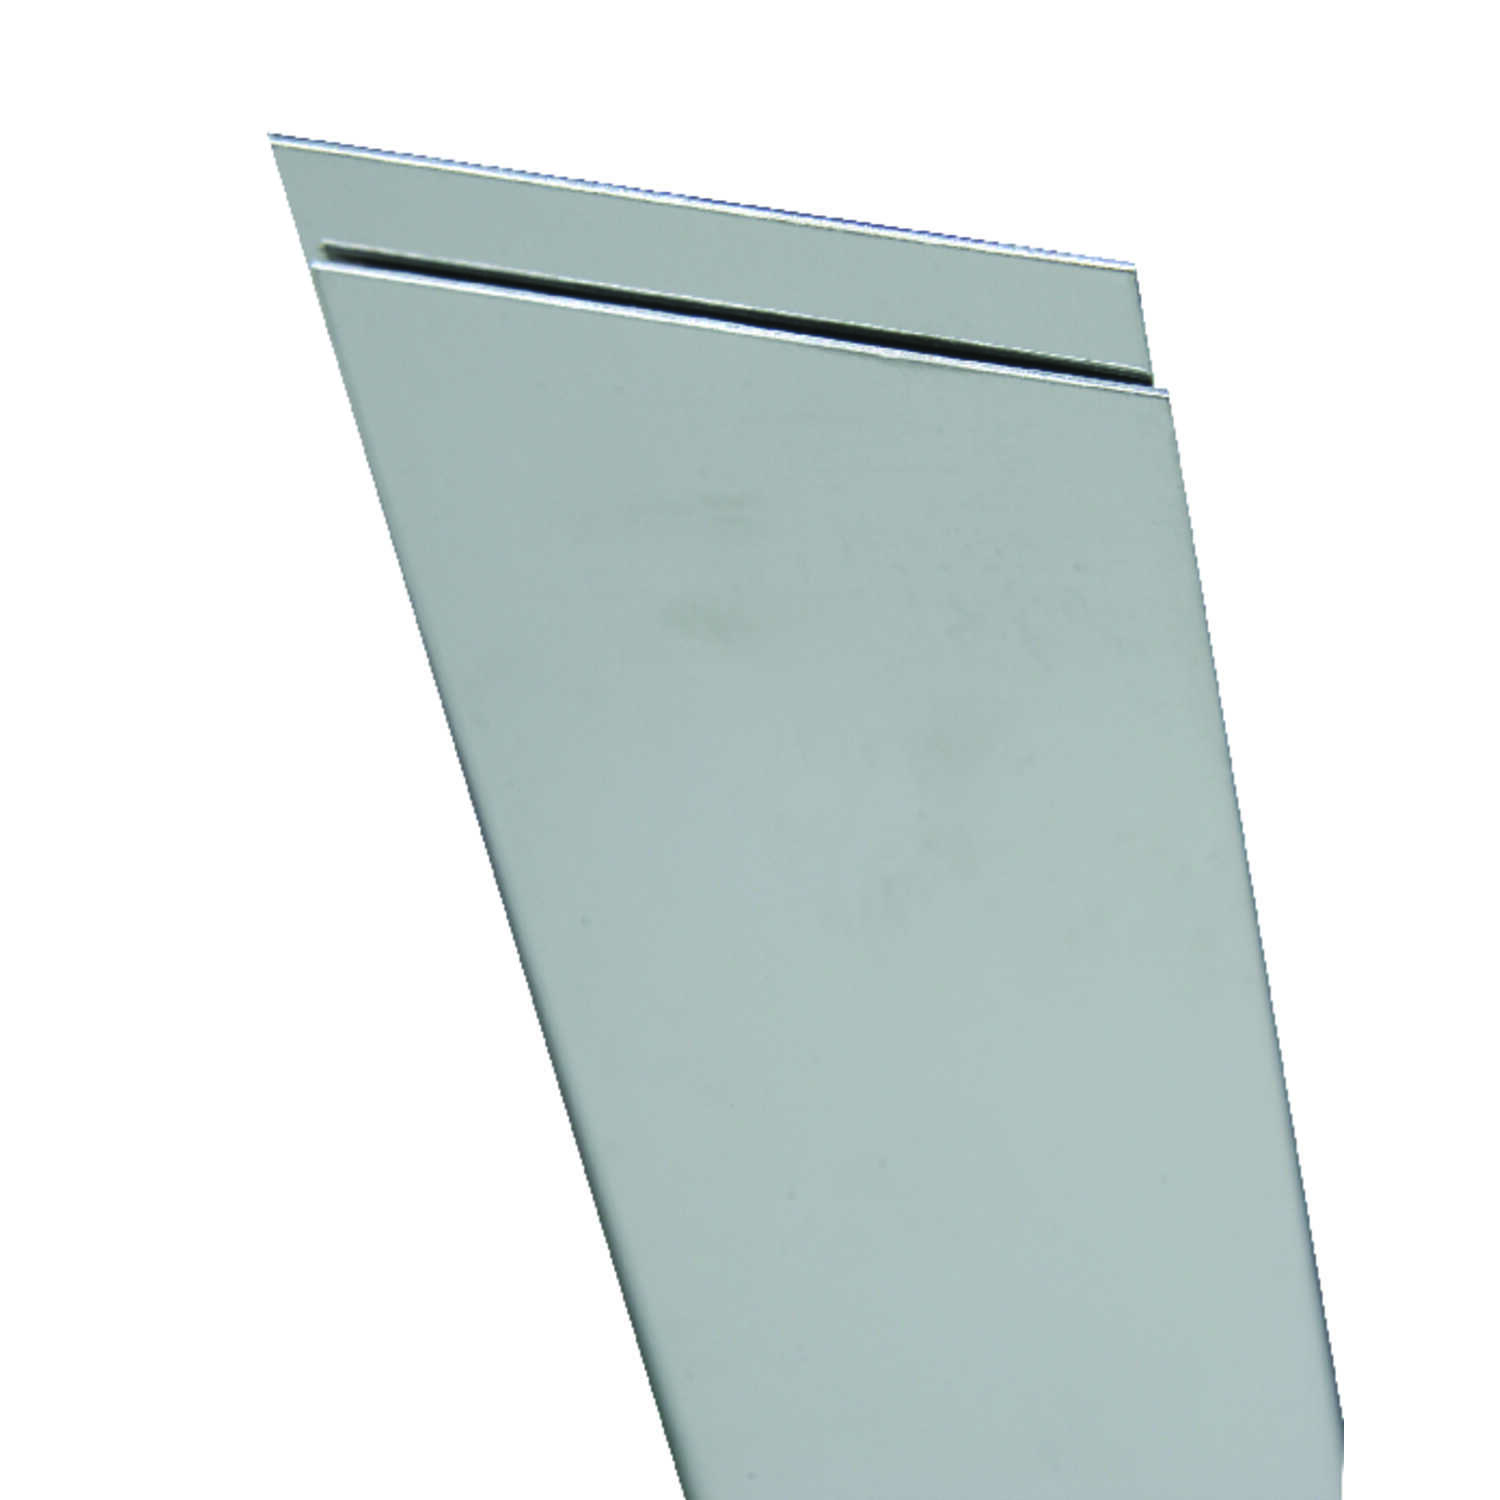 K&S  6 in. Stainless Steel  Sheet Metal